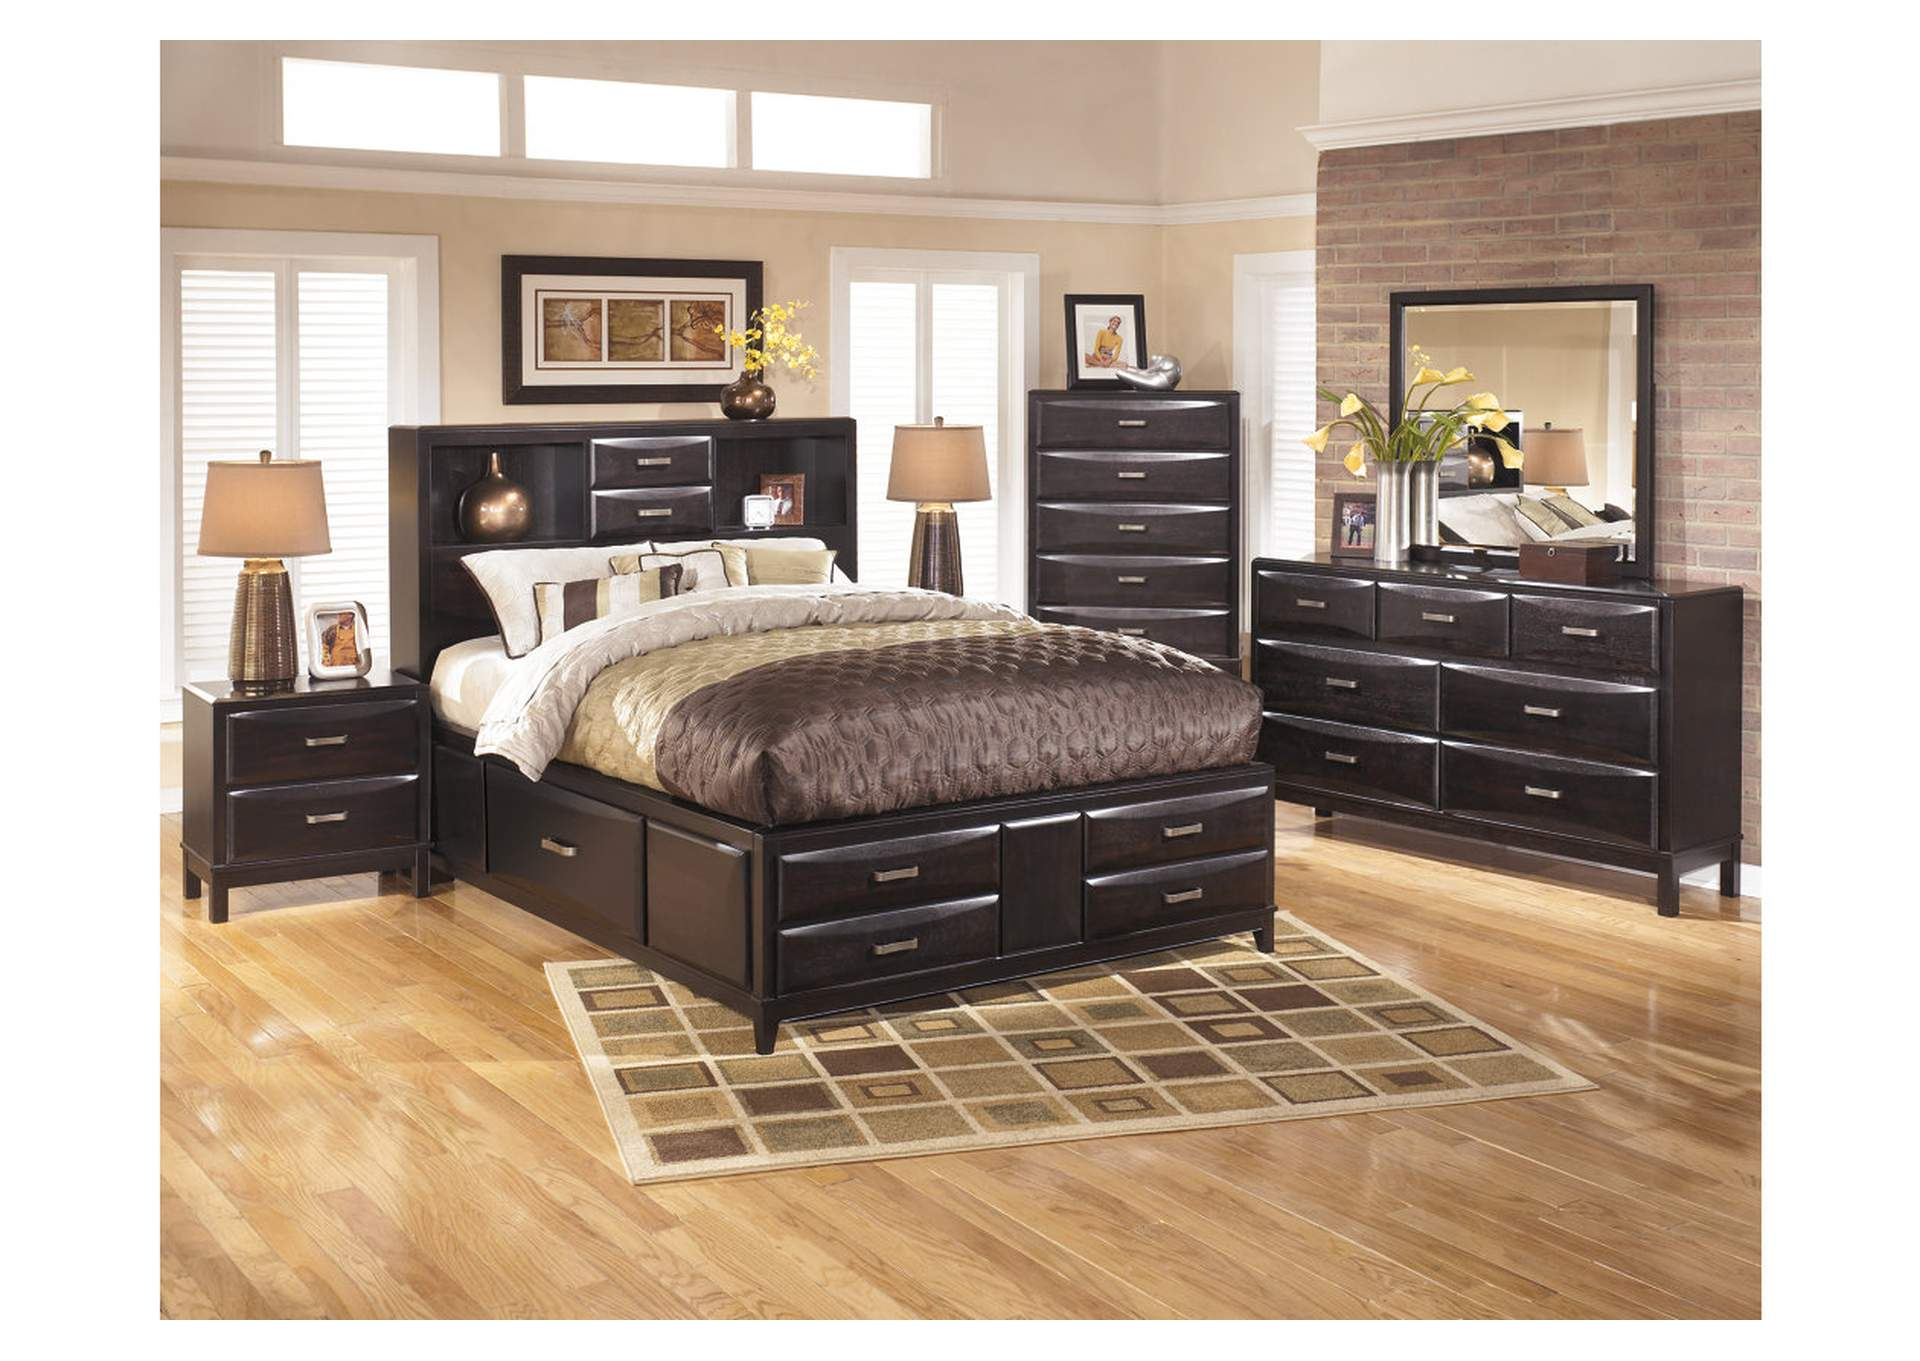 Kira Black King Storage Bed w/Dresser, Mirror, Drawer Chest & Nightstand,Ashley